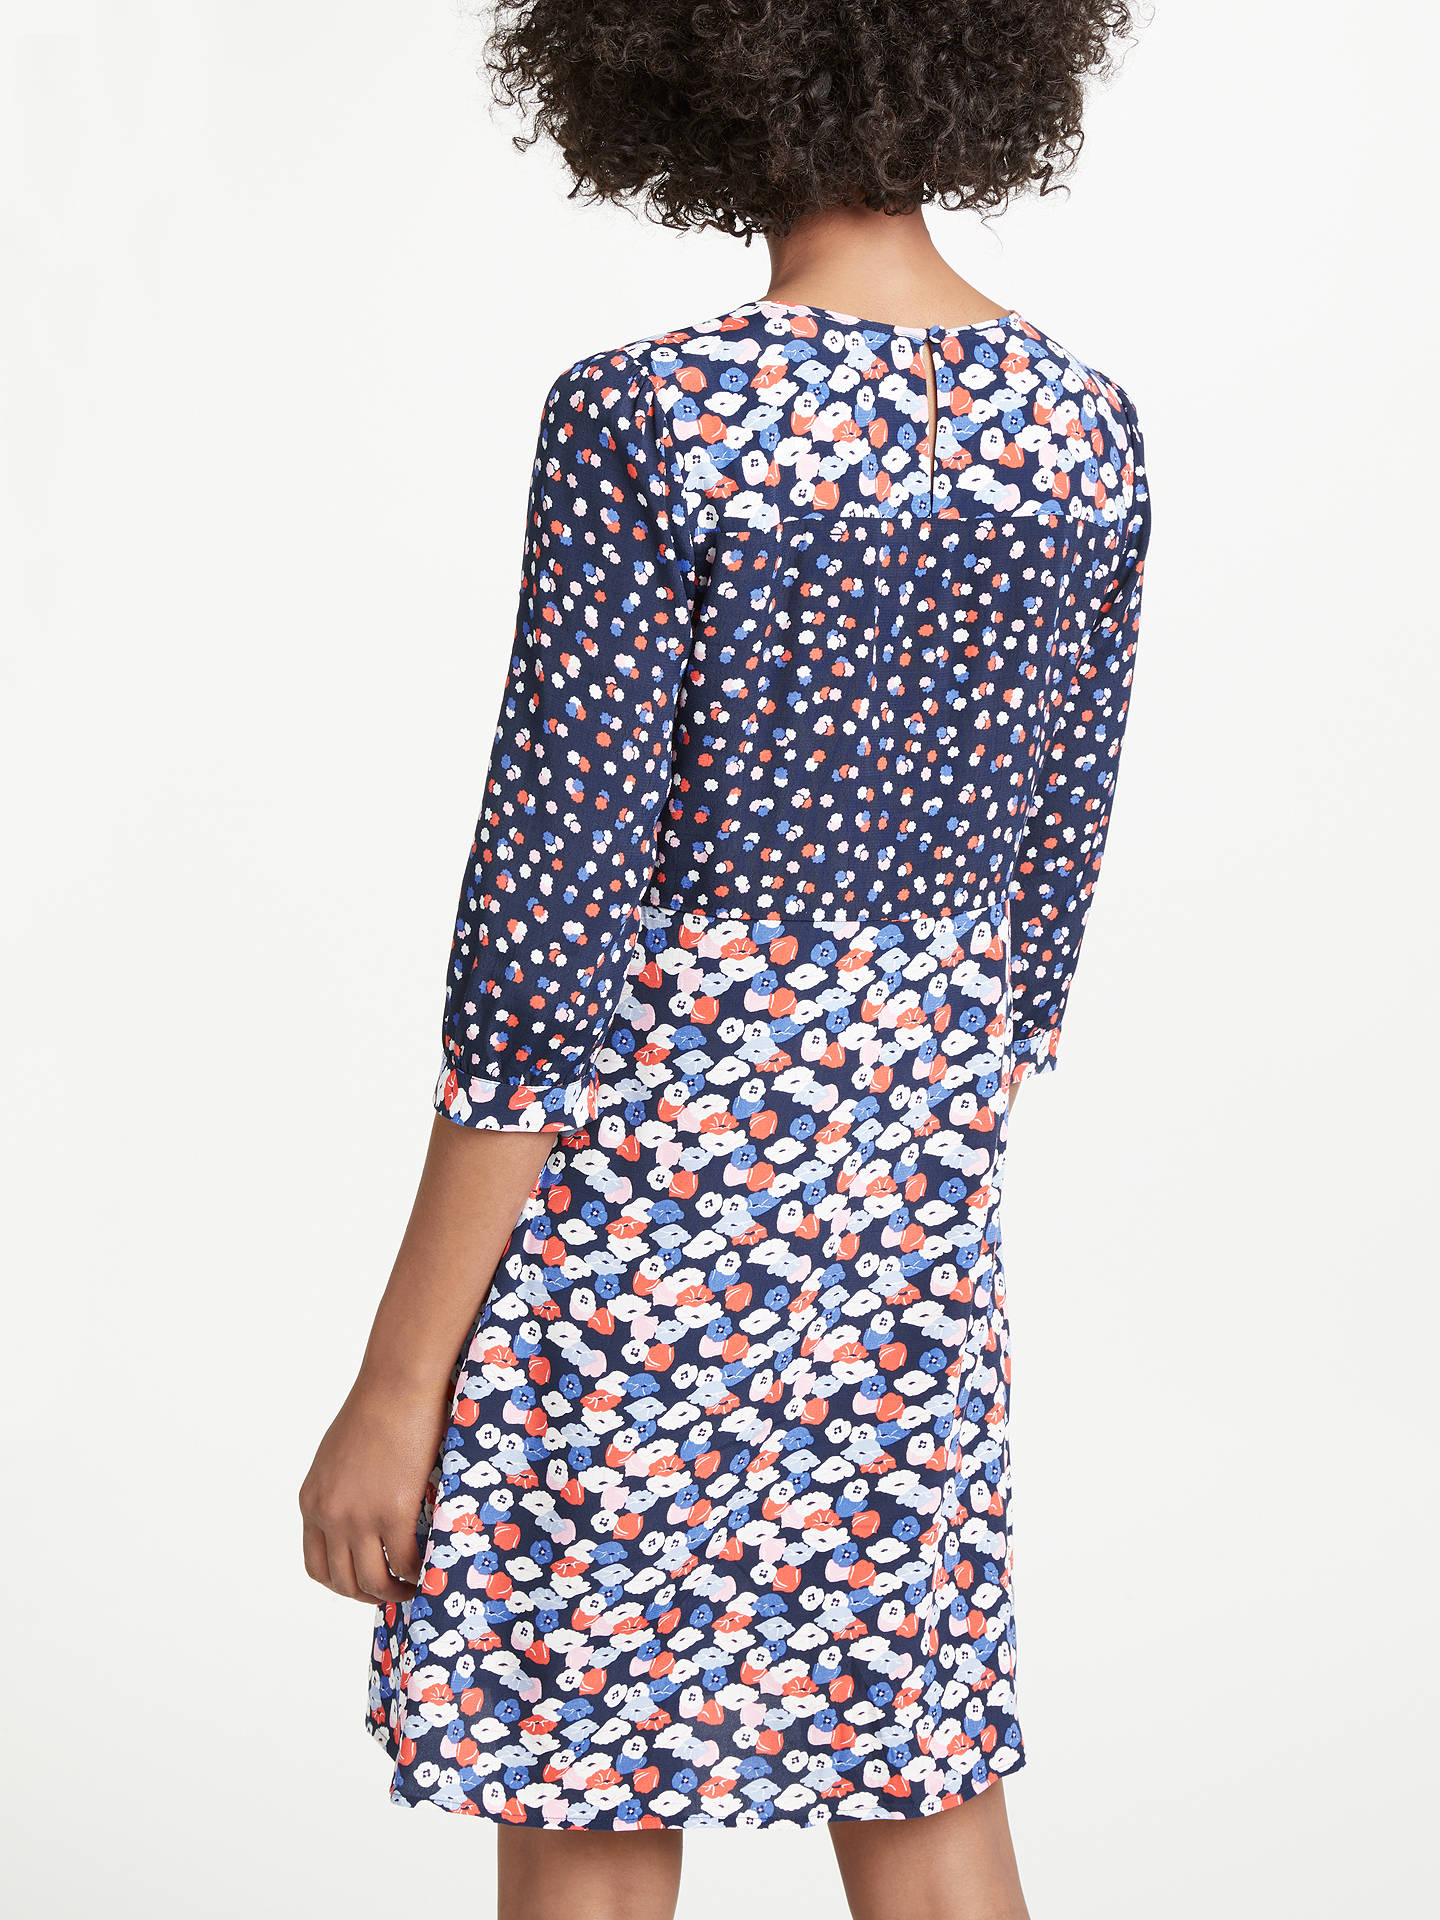 79a53a4bd6cc ... Buy Boden Hotchpotch Poppy Meadow Pintuck Dress, Navy/Multi, 8 Online  at johnlewis ...